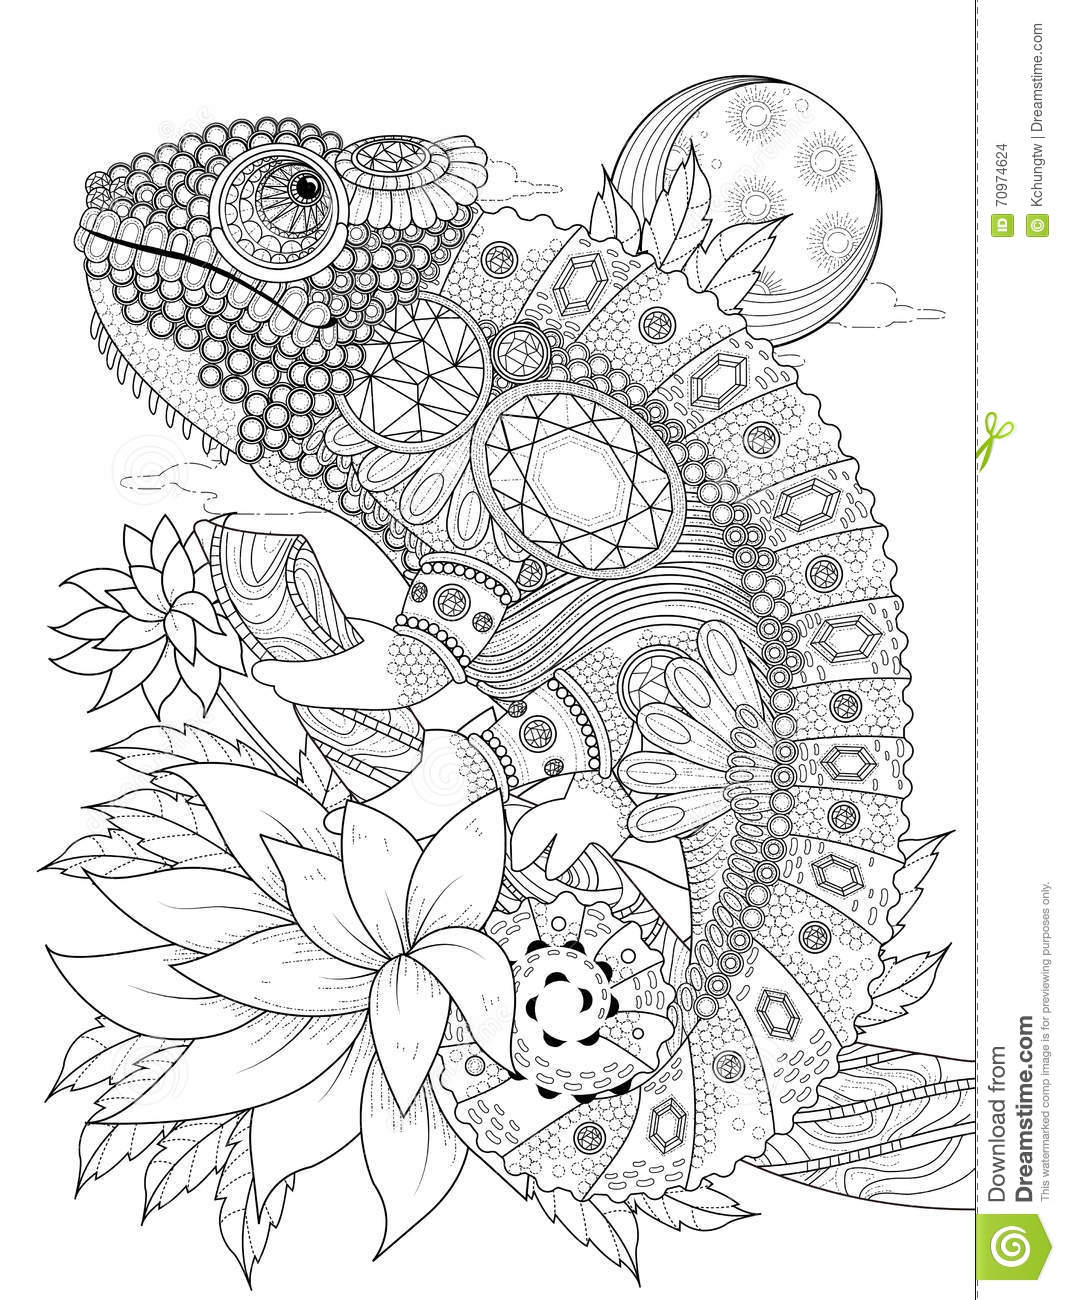 coloring pages for adults chameleon quotchameleon in zentangle style adult antistress coloring adults pages coloring for chameleon